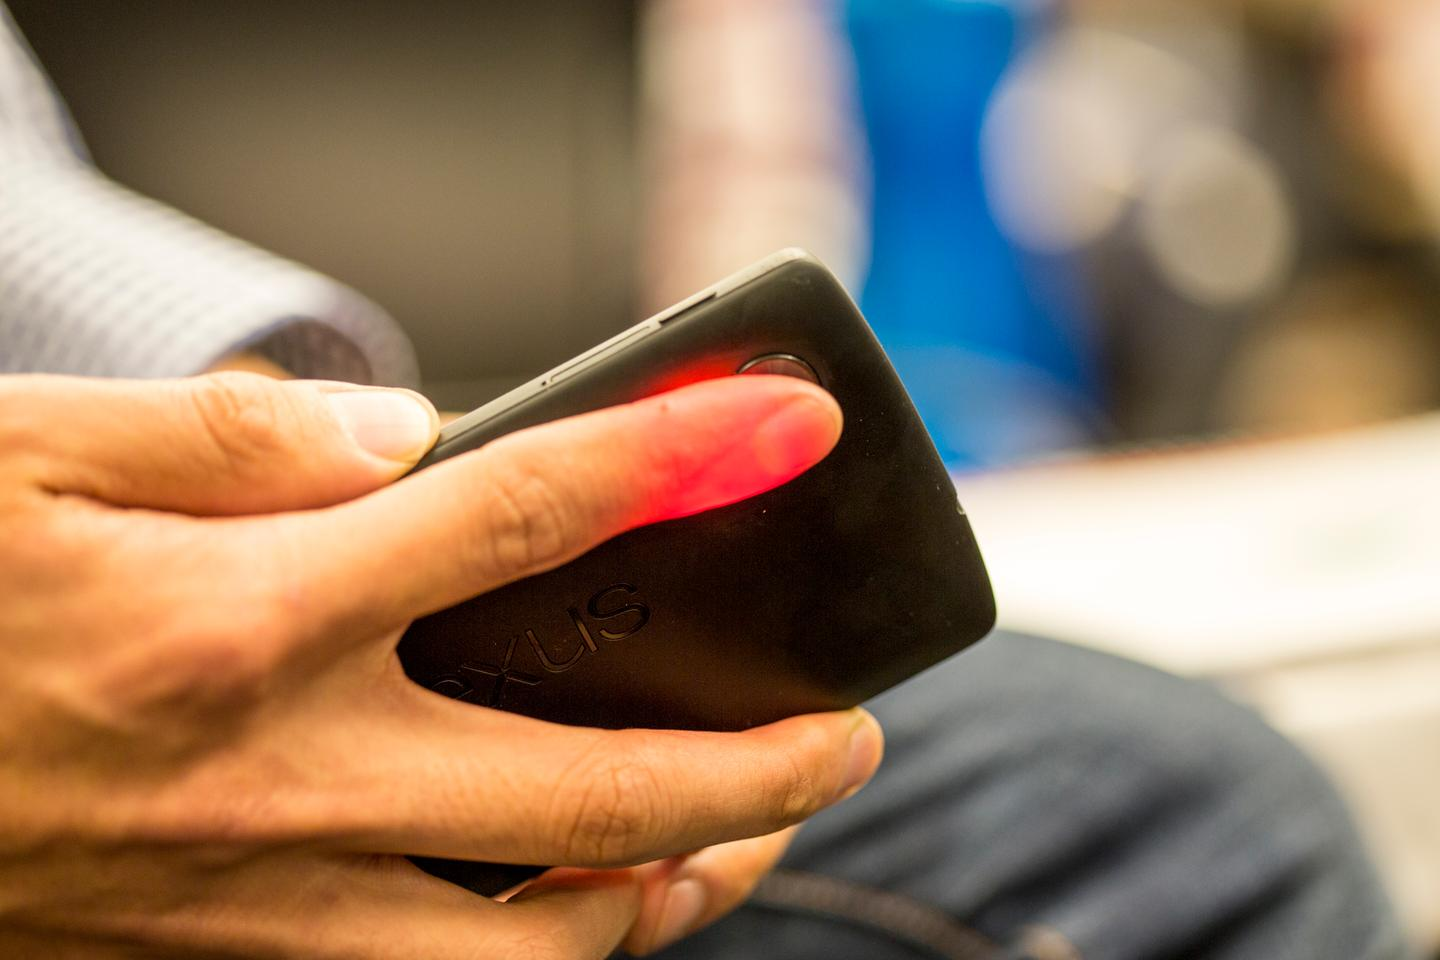 In a trial with 31 patients, the team found that HemaApp had a 69 percent correlation to the patient's blood test